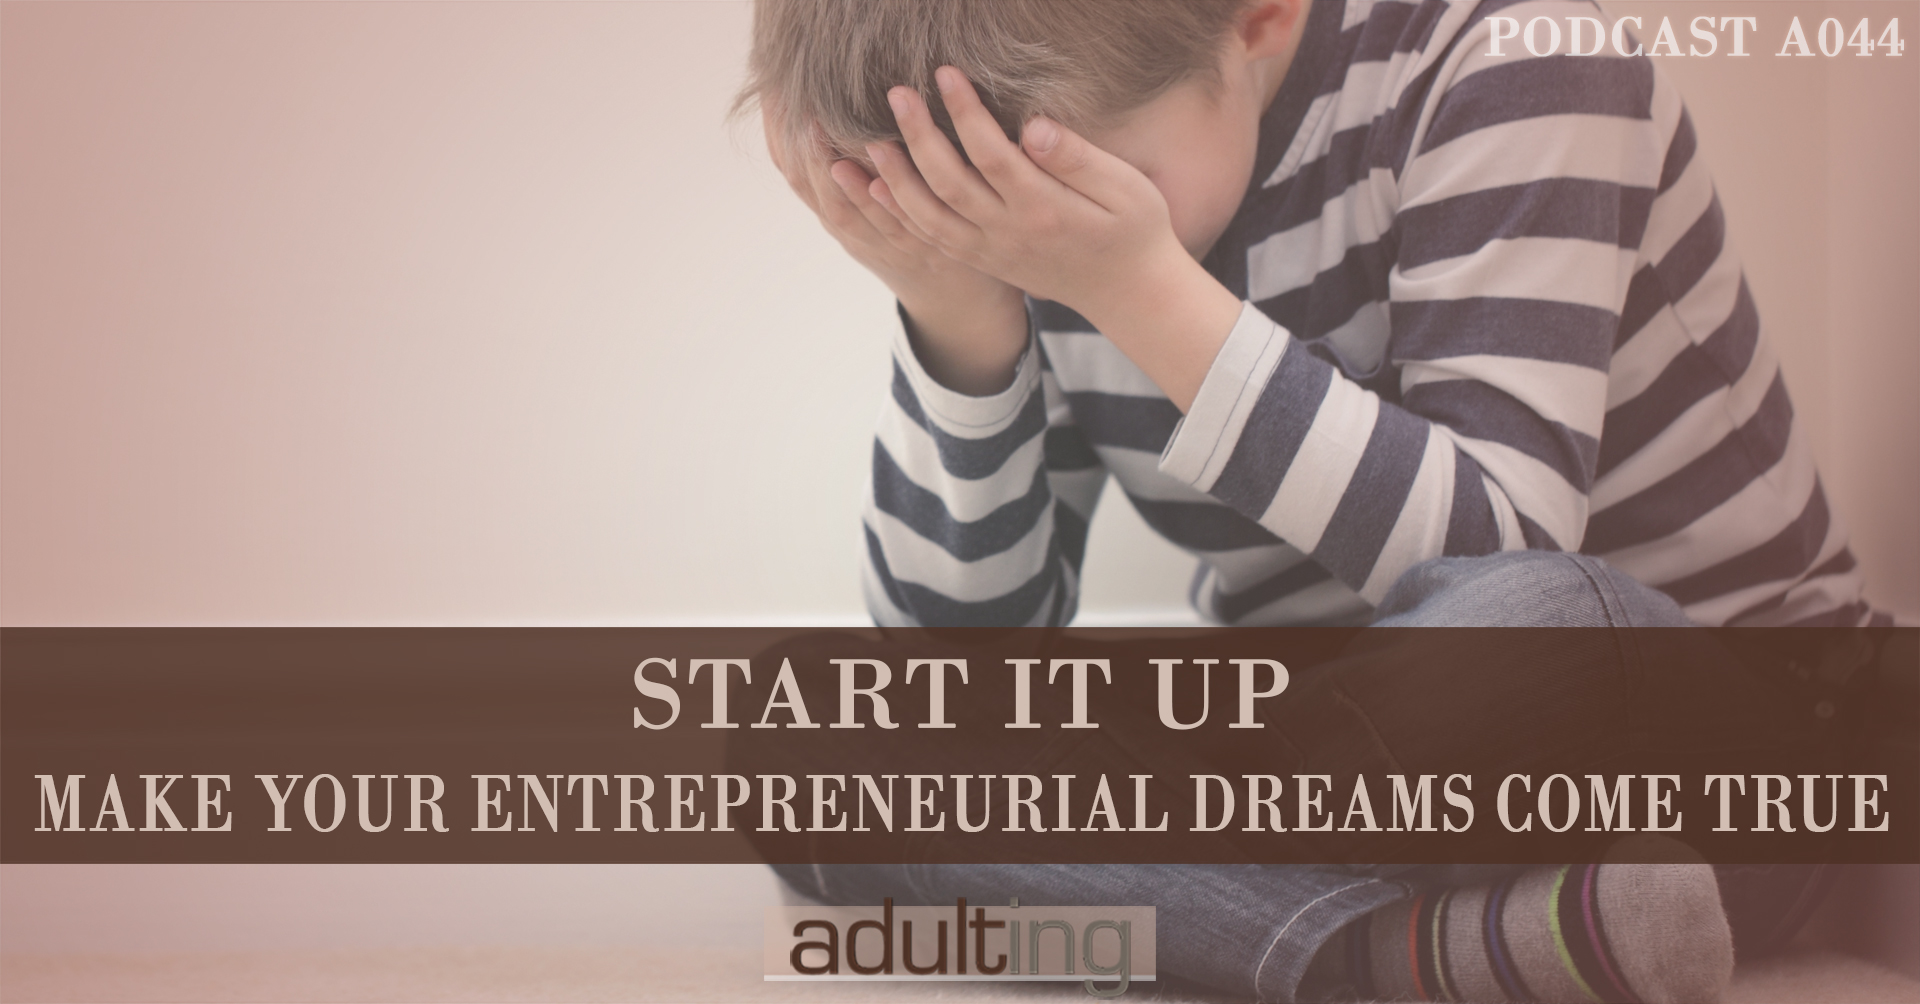 Entrepreneurship is the new Big Thing. But is it really your ticket to financial freedom and living the good life?